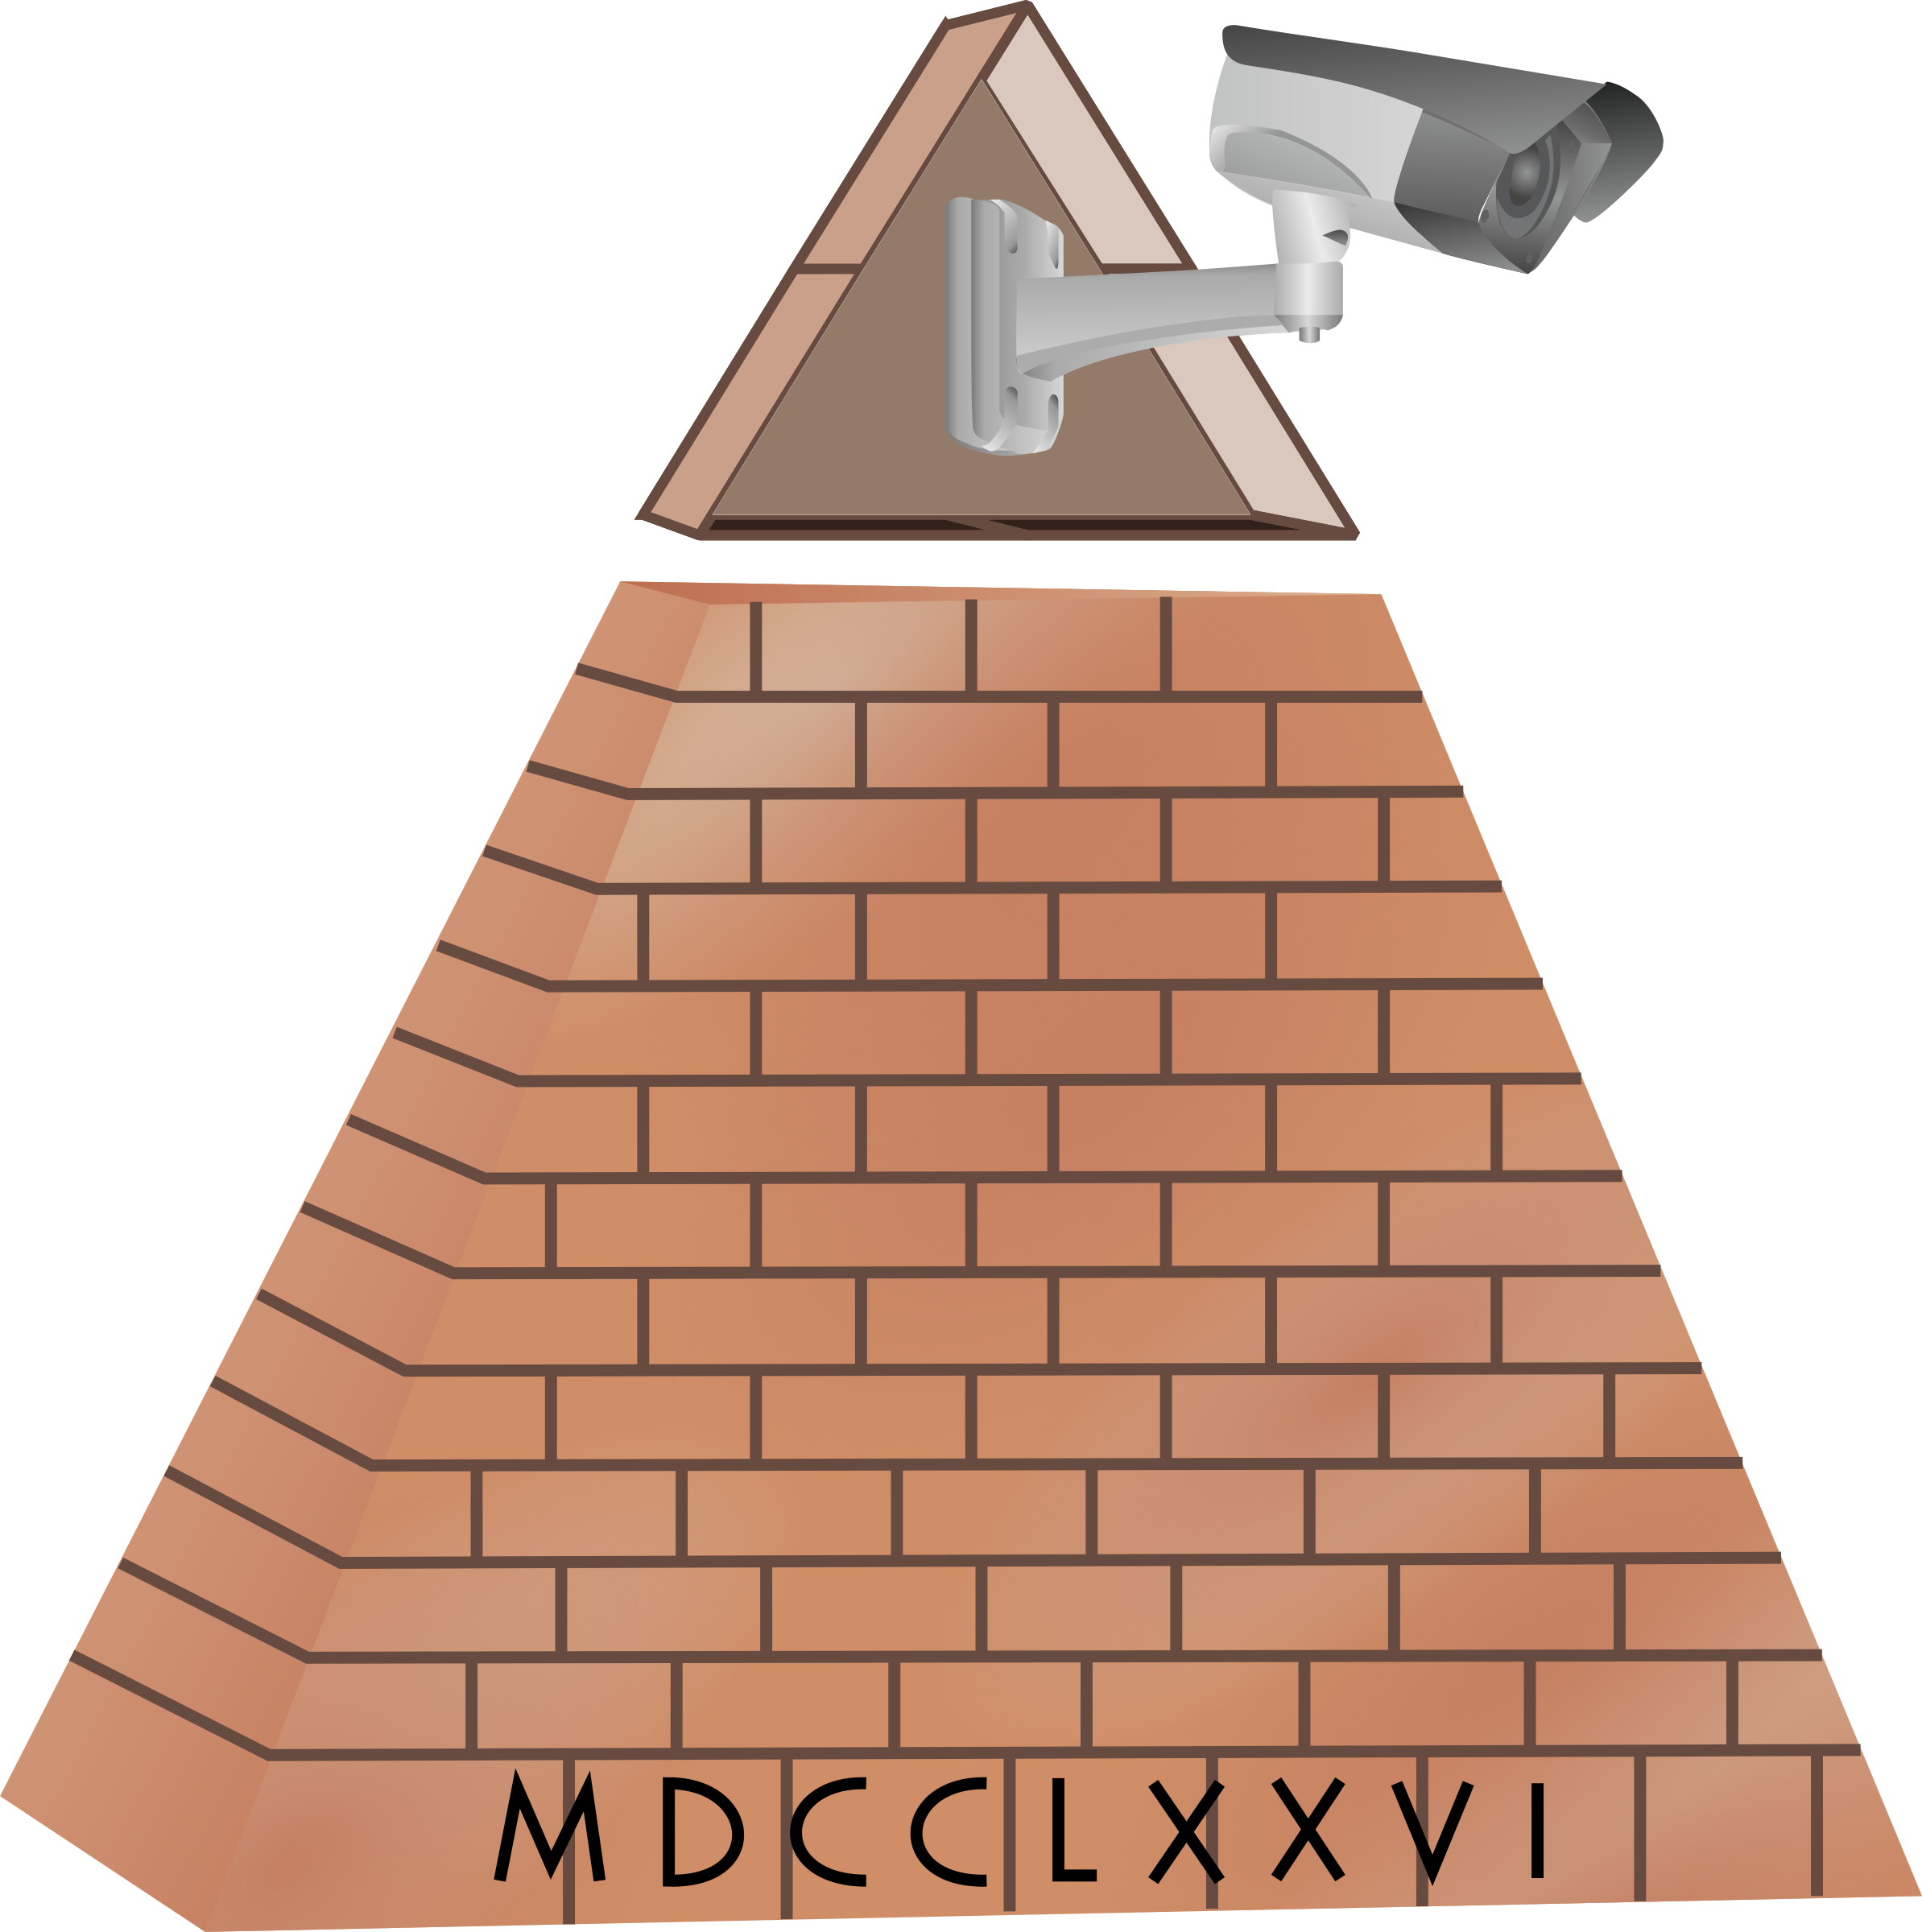 Brick clipart pyramid Clipart Simple Clipart Pyramid Images